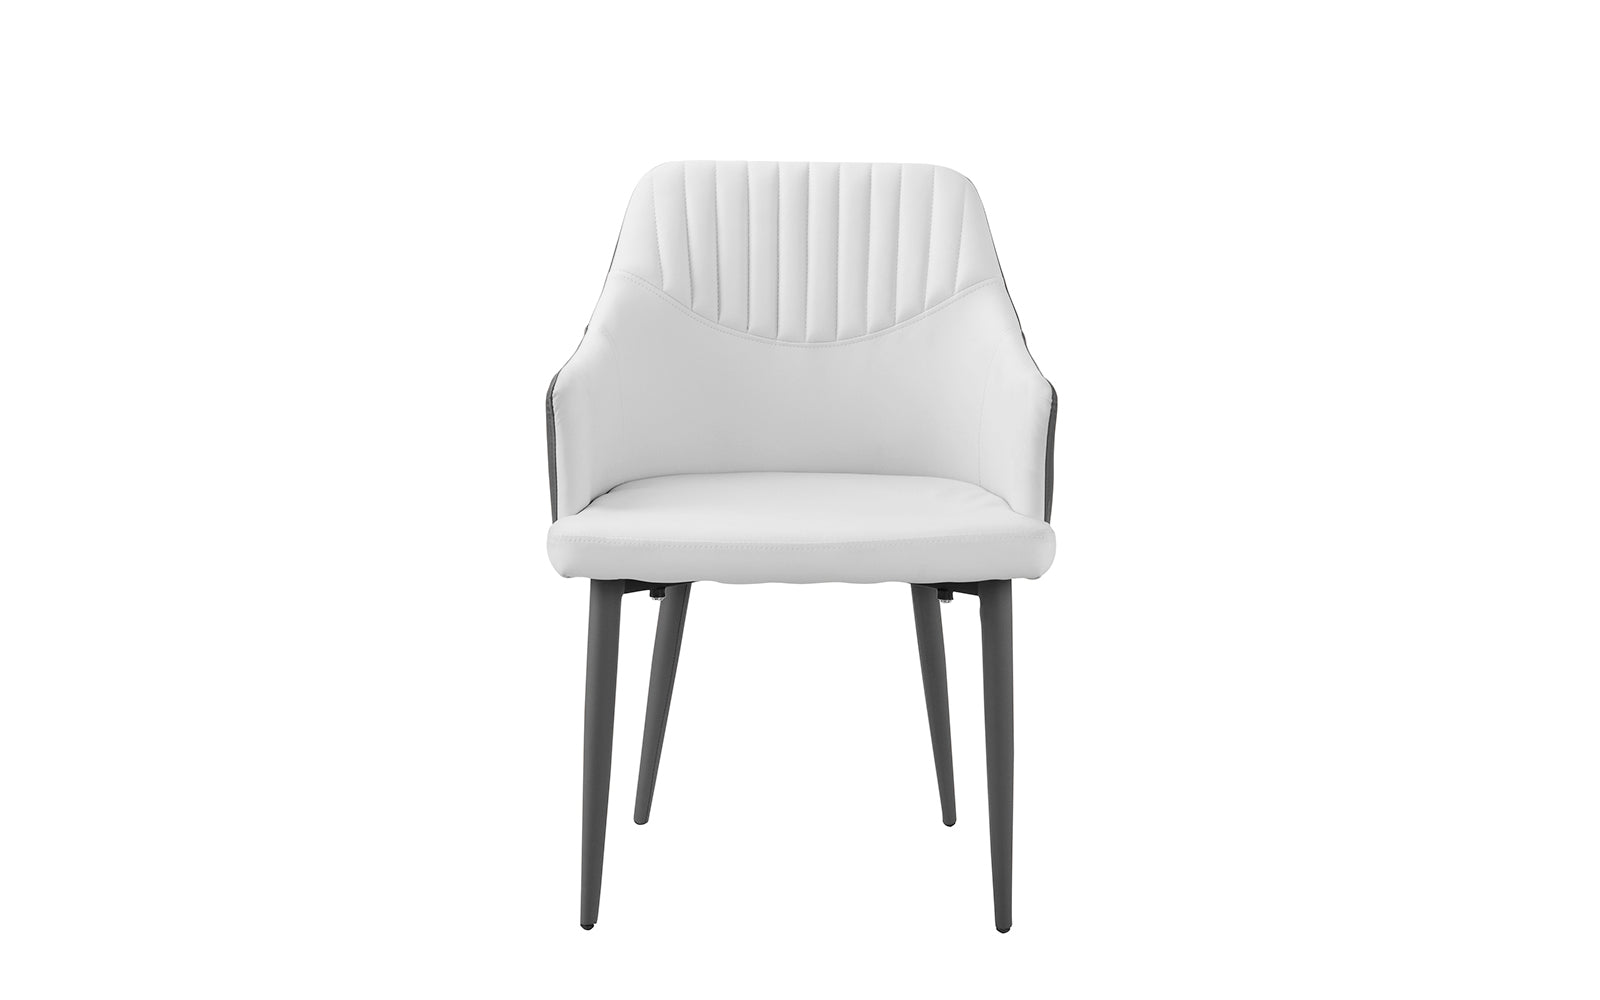 Cadence Set of 2 Dining Armchairs in Faux Leather | Sofamania.com